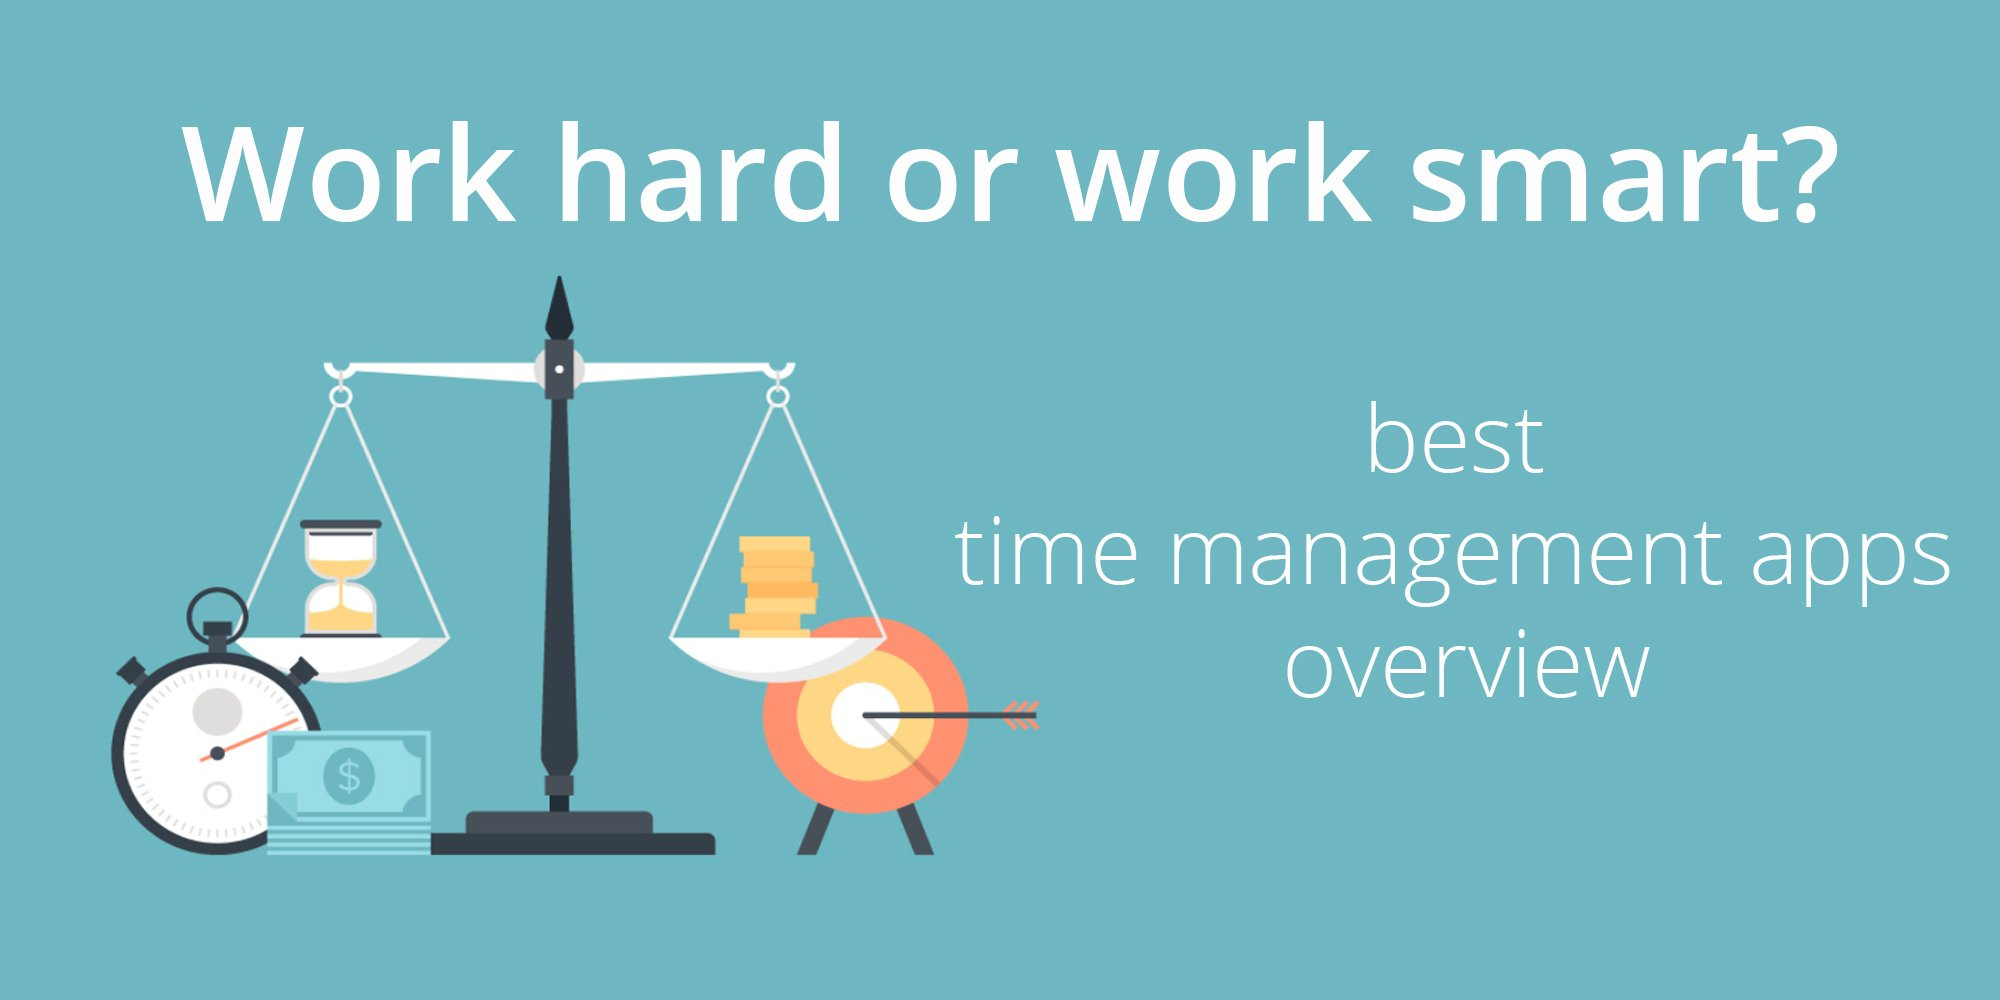 Apptica's overview of best time management tools in 2019